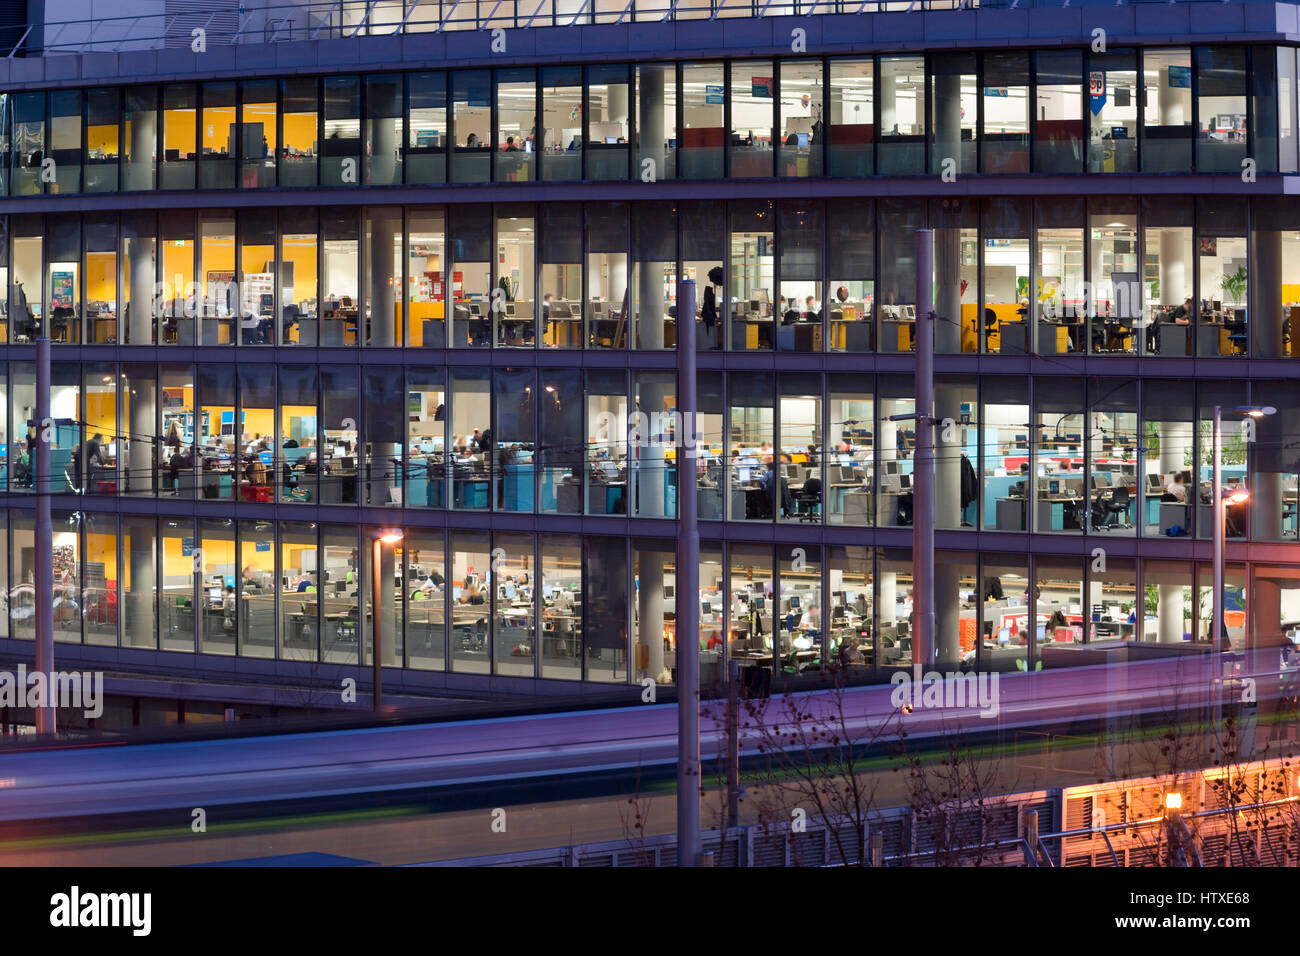 Commercial Offices at dusk, Nottingham, Nottinghamshire, England, UK. - Stock Image